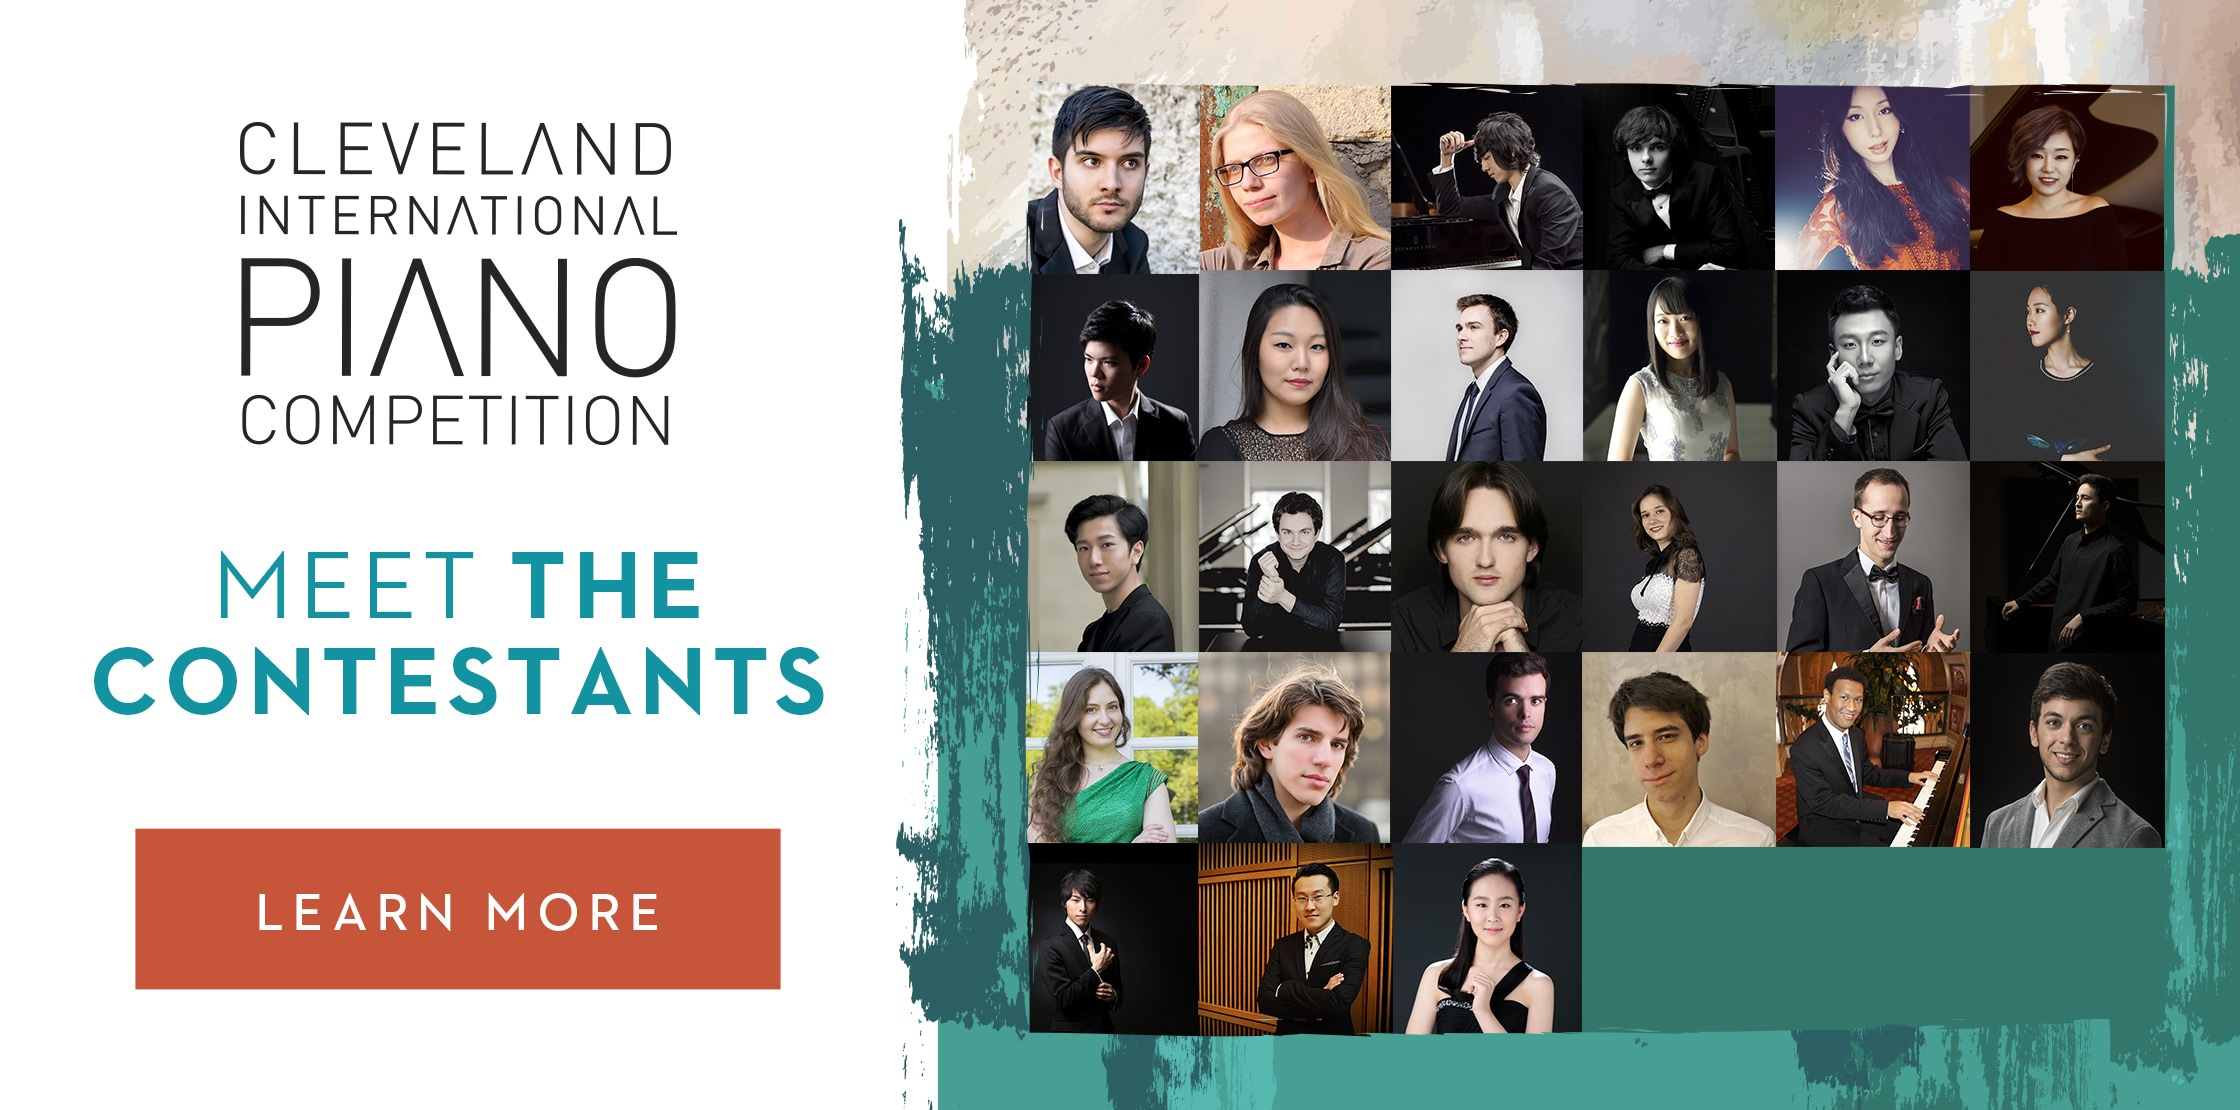 Cleveland International Piano Competition Contestants